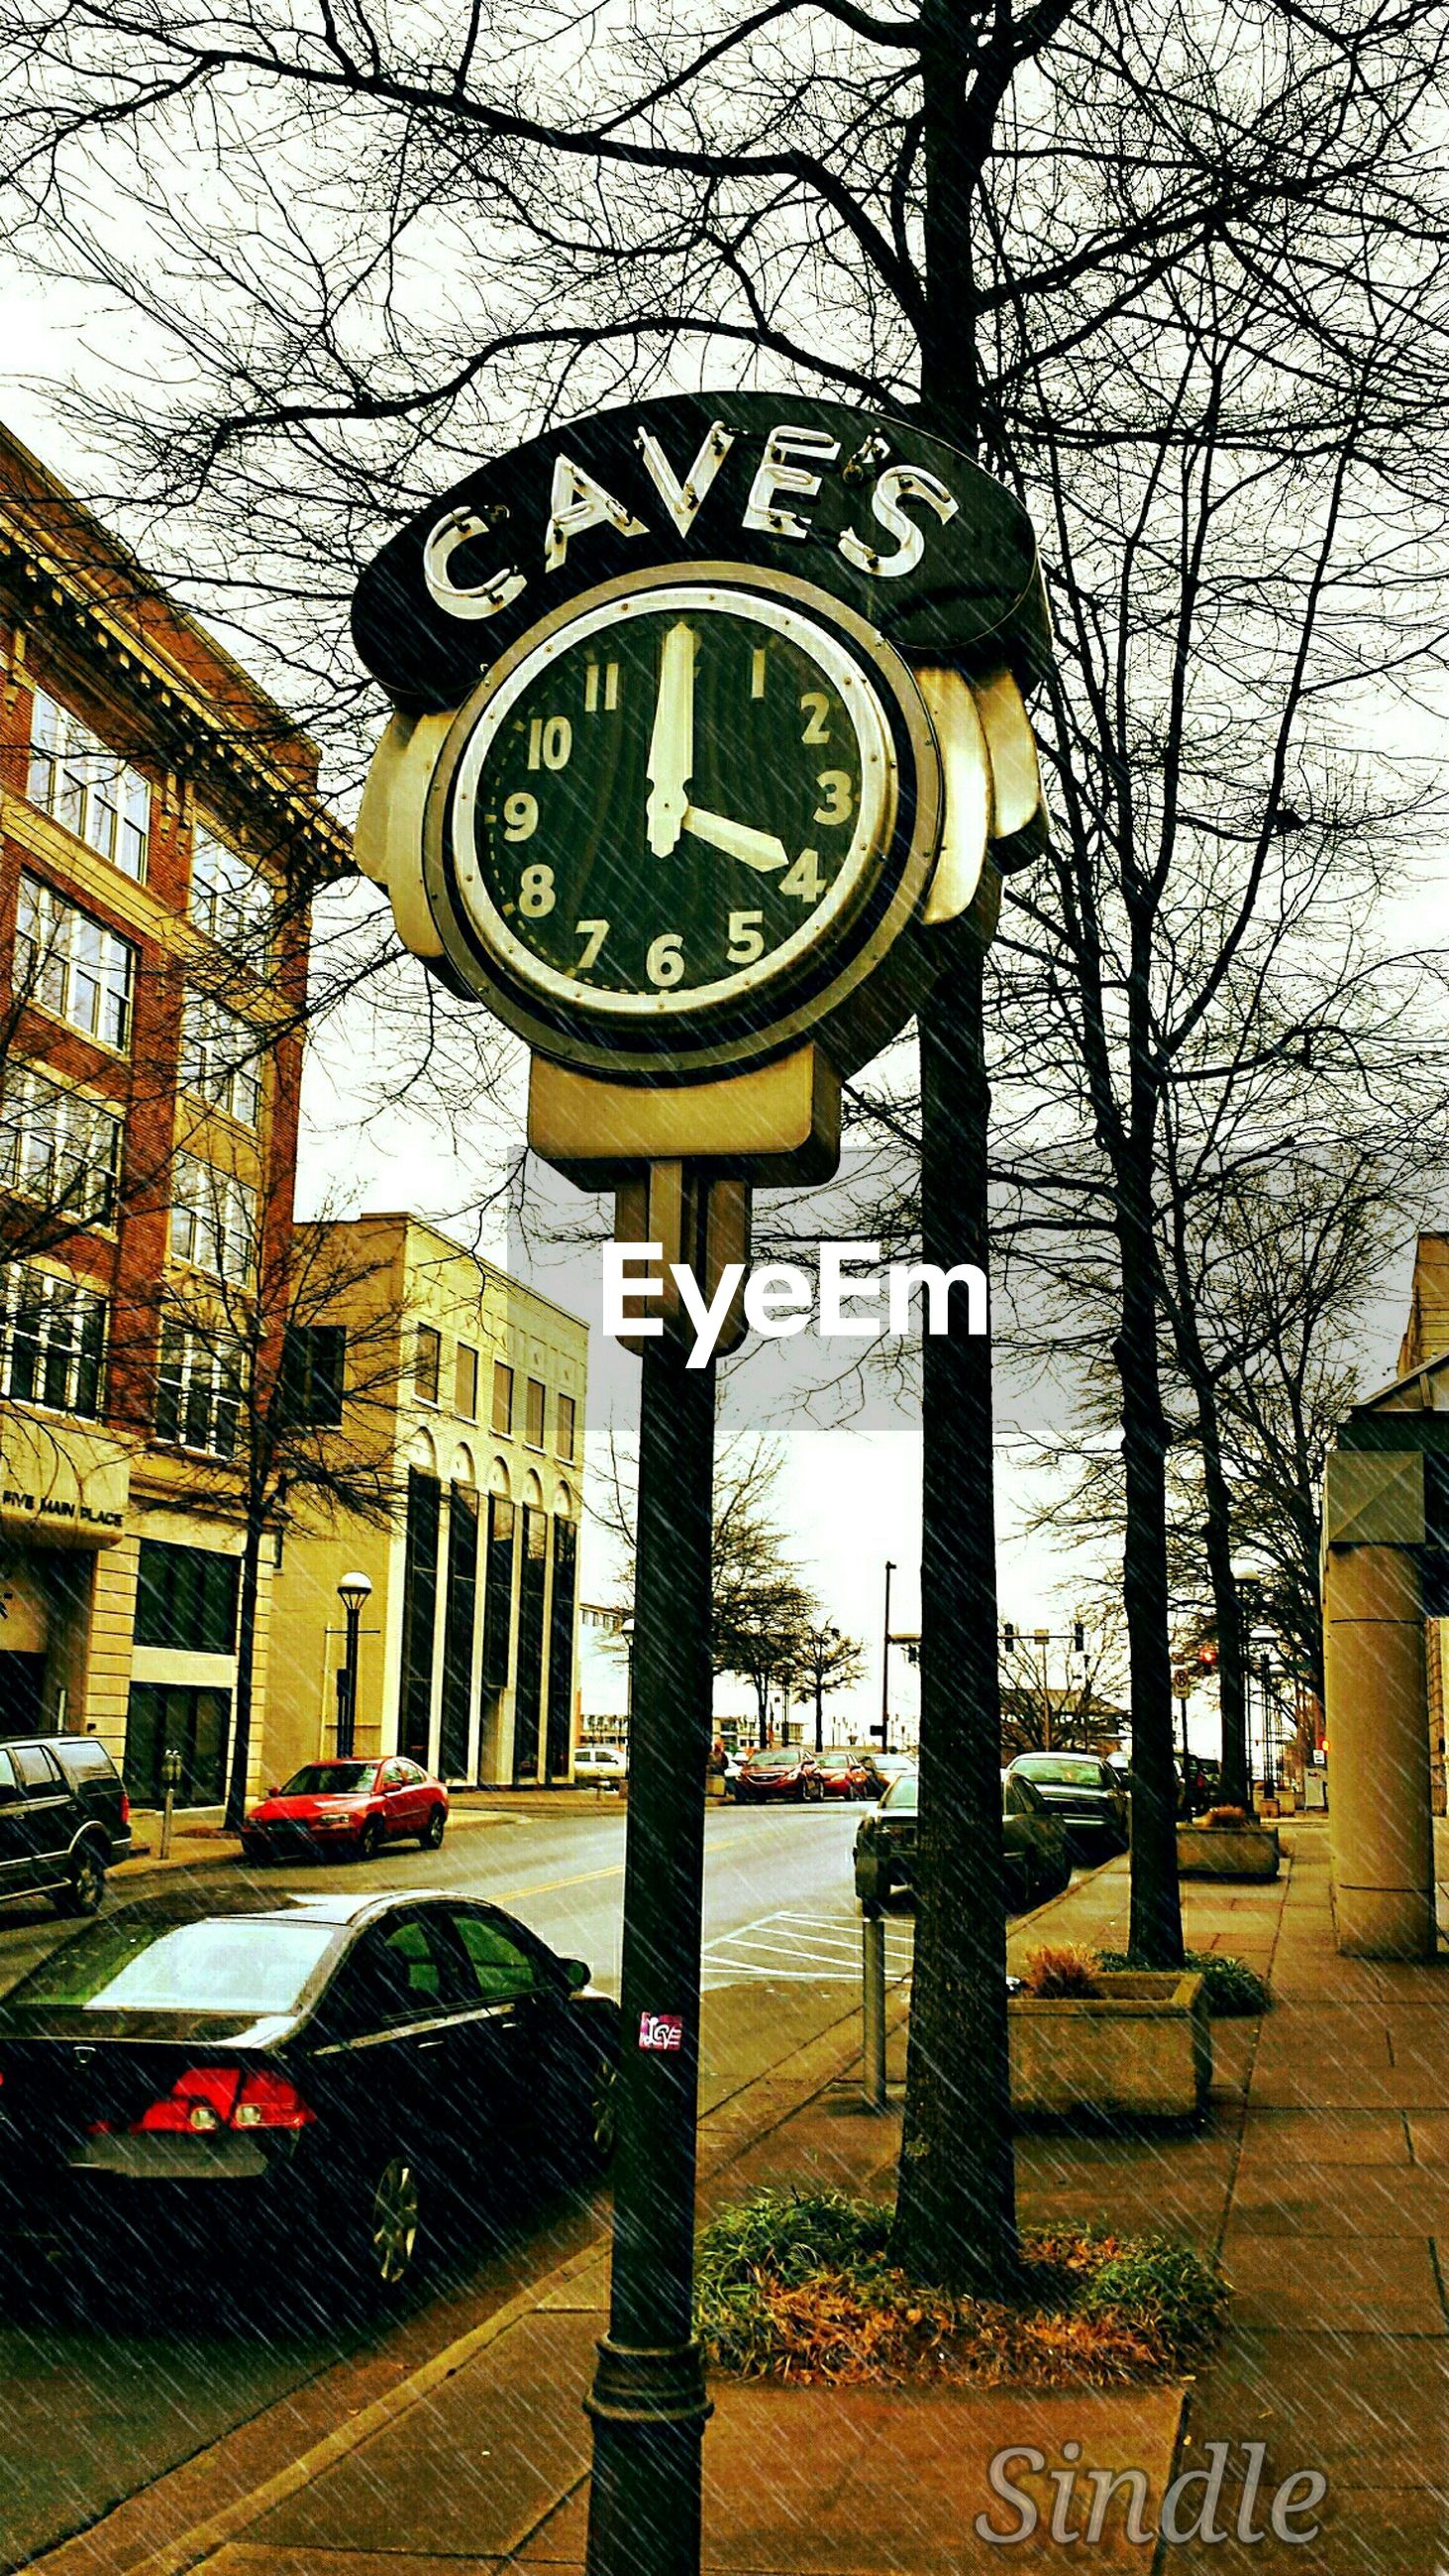 clock, text, tree, bare tree, architecture, built structure, building exterior, communication, time, western script, transportation, road sign, street, number, information sign, city, car, day, sky, clock tower